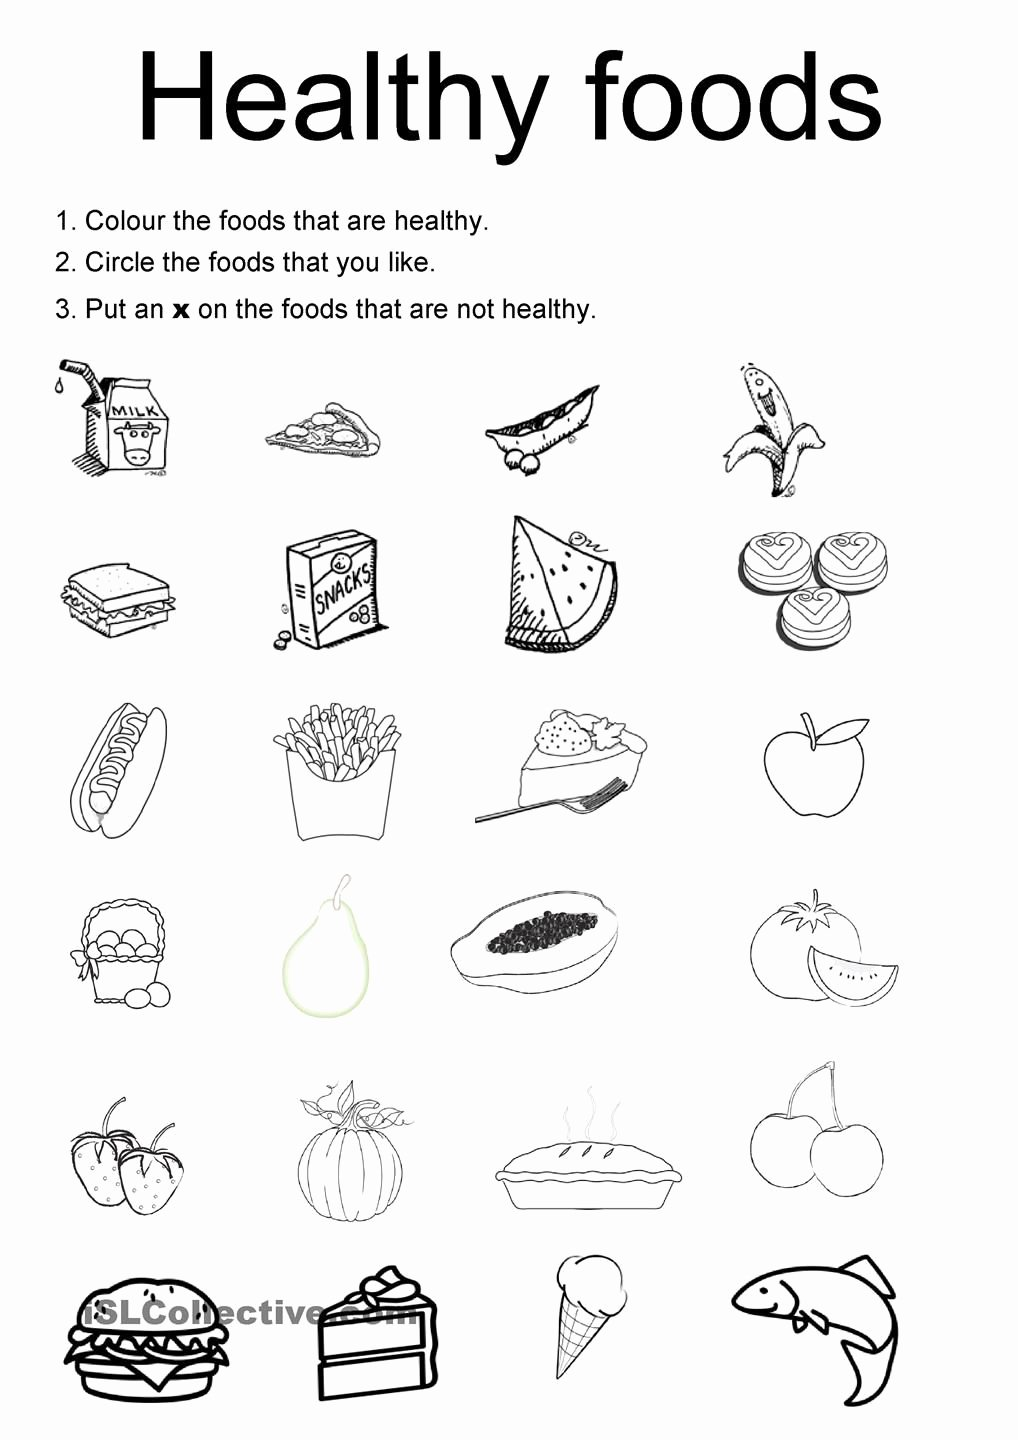 Nutrition Worksheets for Preschoolers Best Of Healthy Foods for Kids Worksheets Good Galleries